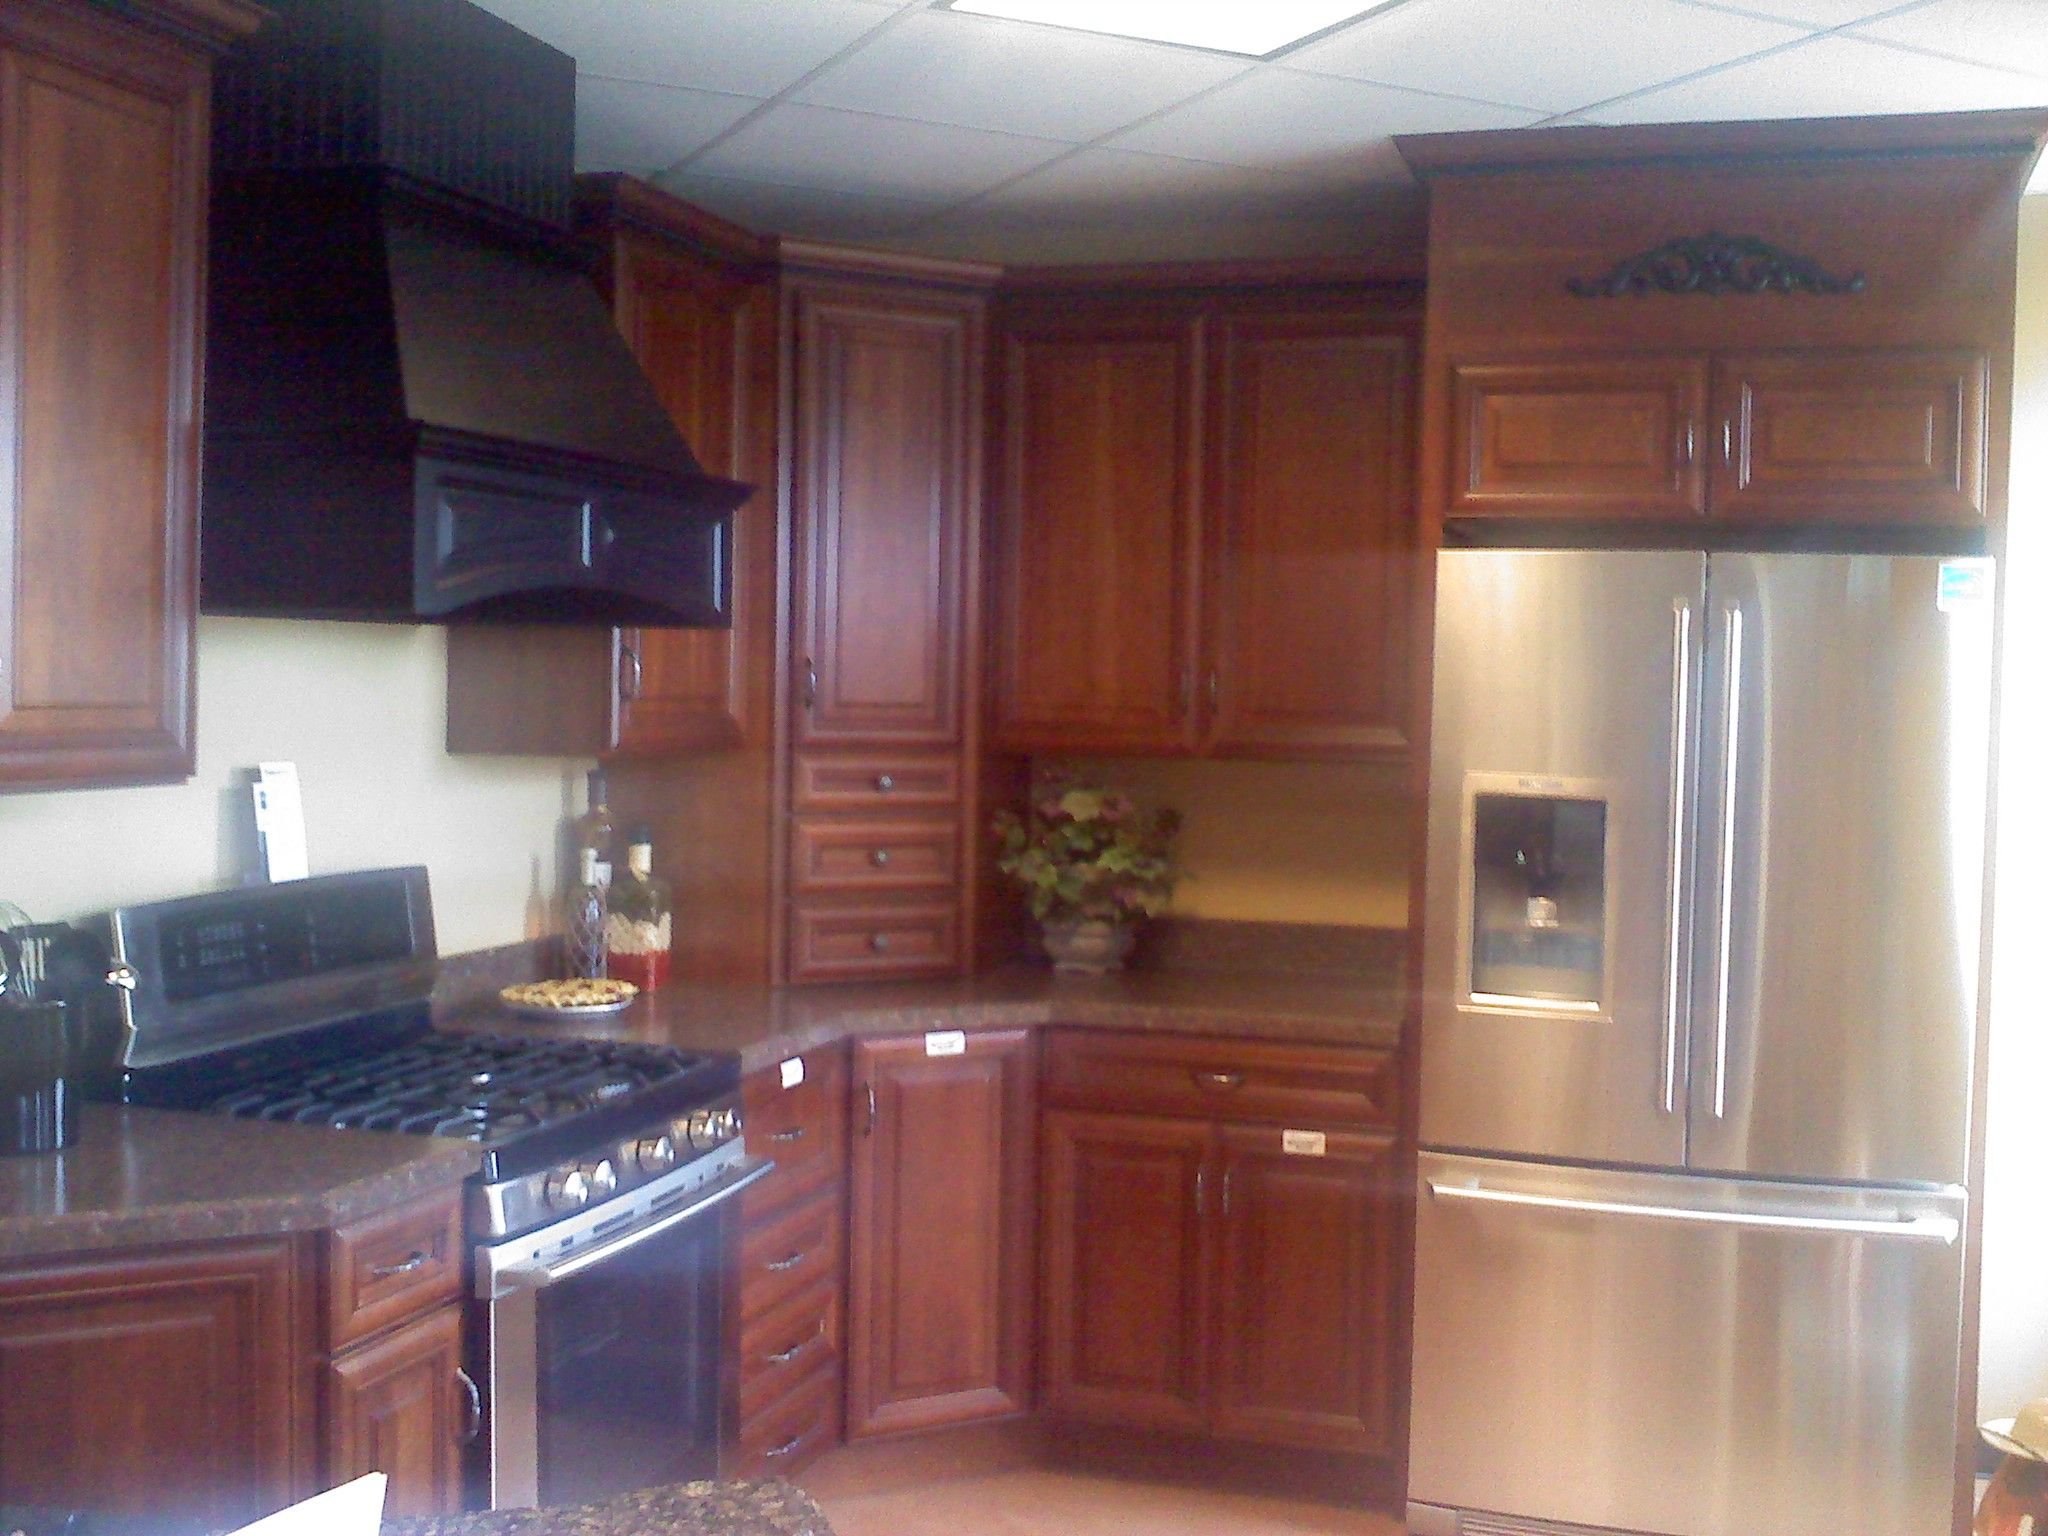 Caruso S Cabinets Wellborn Cabinet Savannah Cherry Cocoa Java Hood Accents In Maple Midnight Wellborncabinet Wellborn Cabinets Cabinet Kitchen